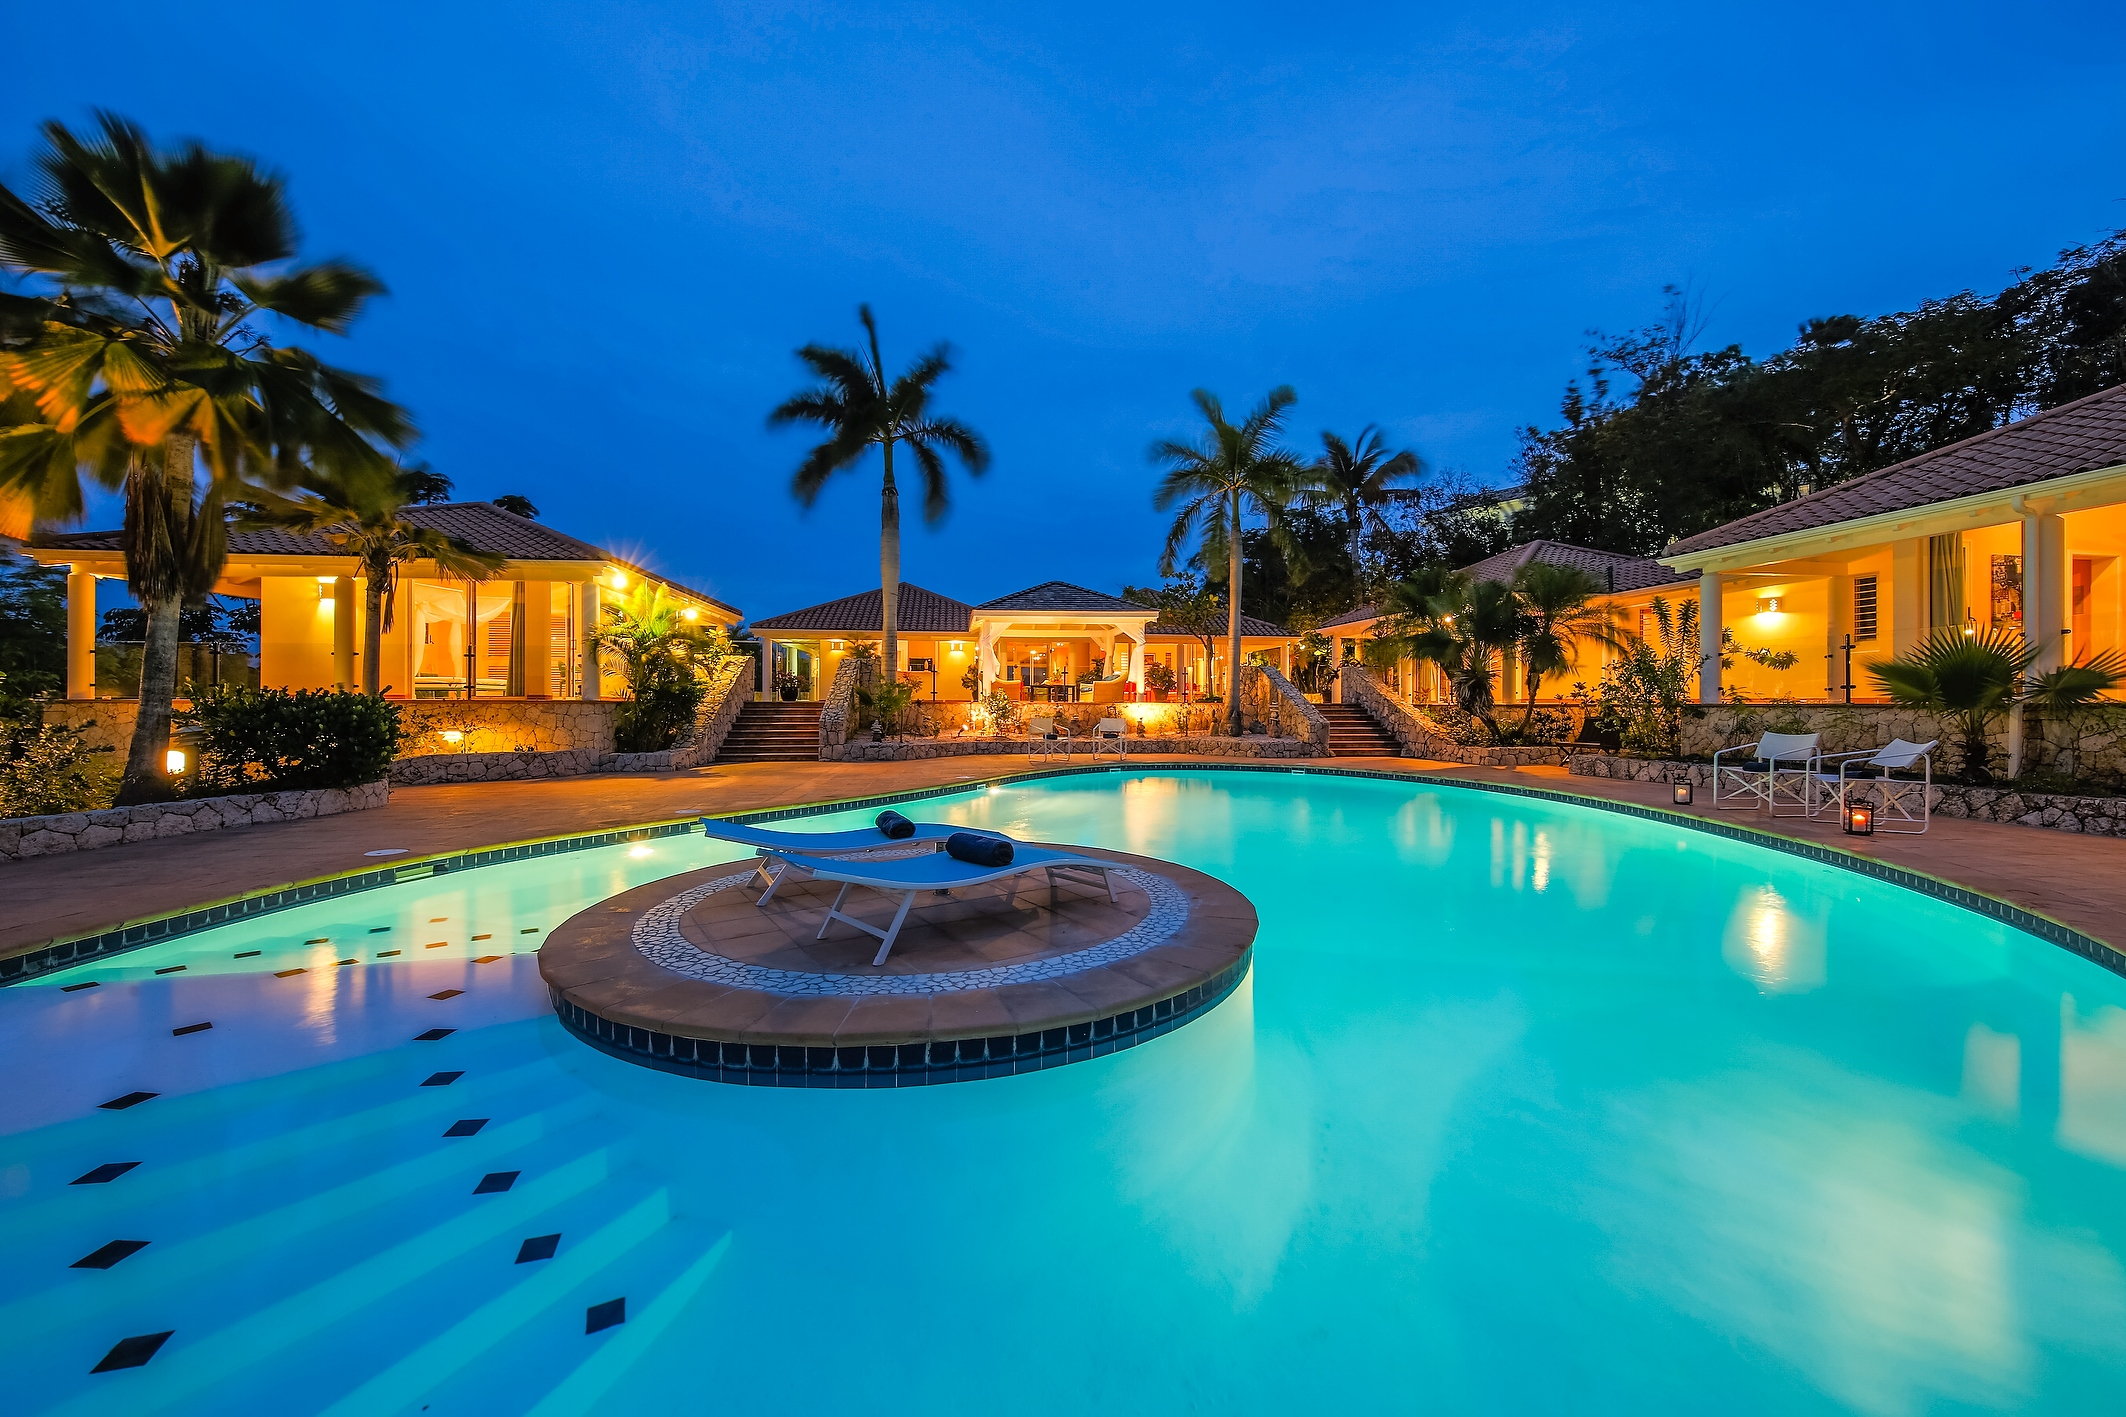 Single Family Home for Sale at Villa Dauphin Terres Basses, 97150 St. Martin